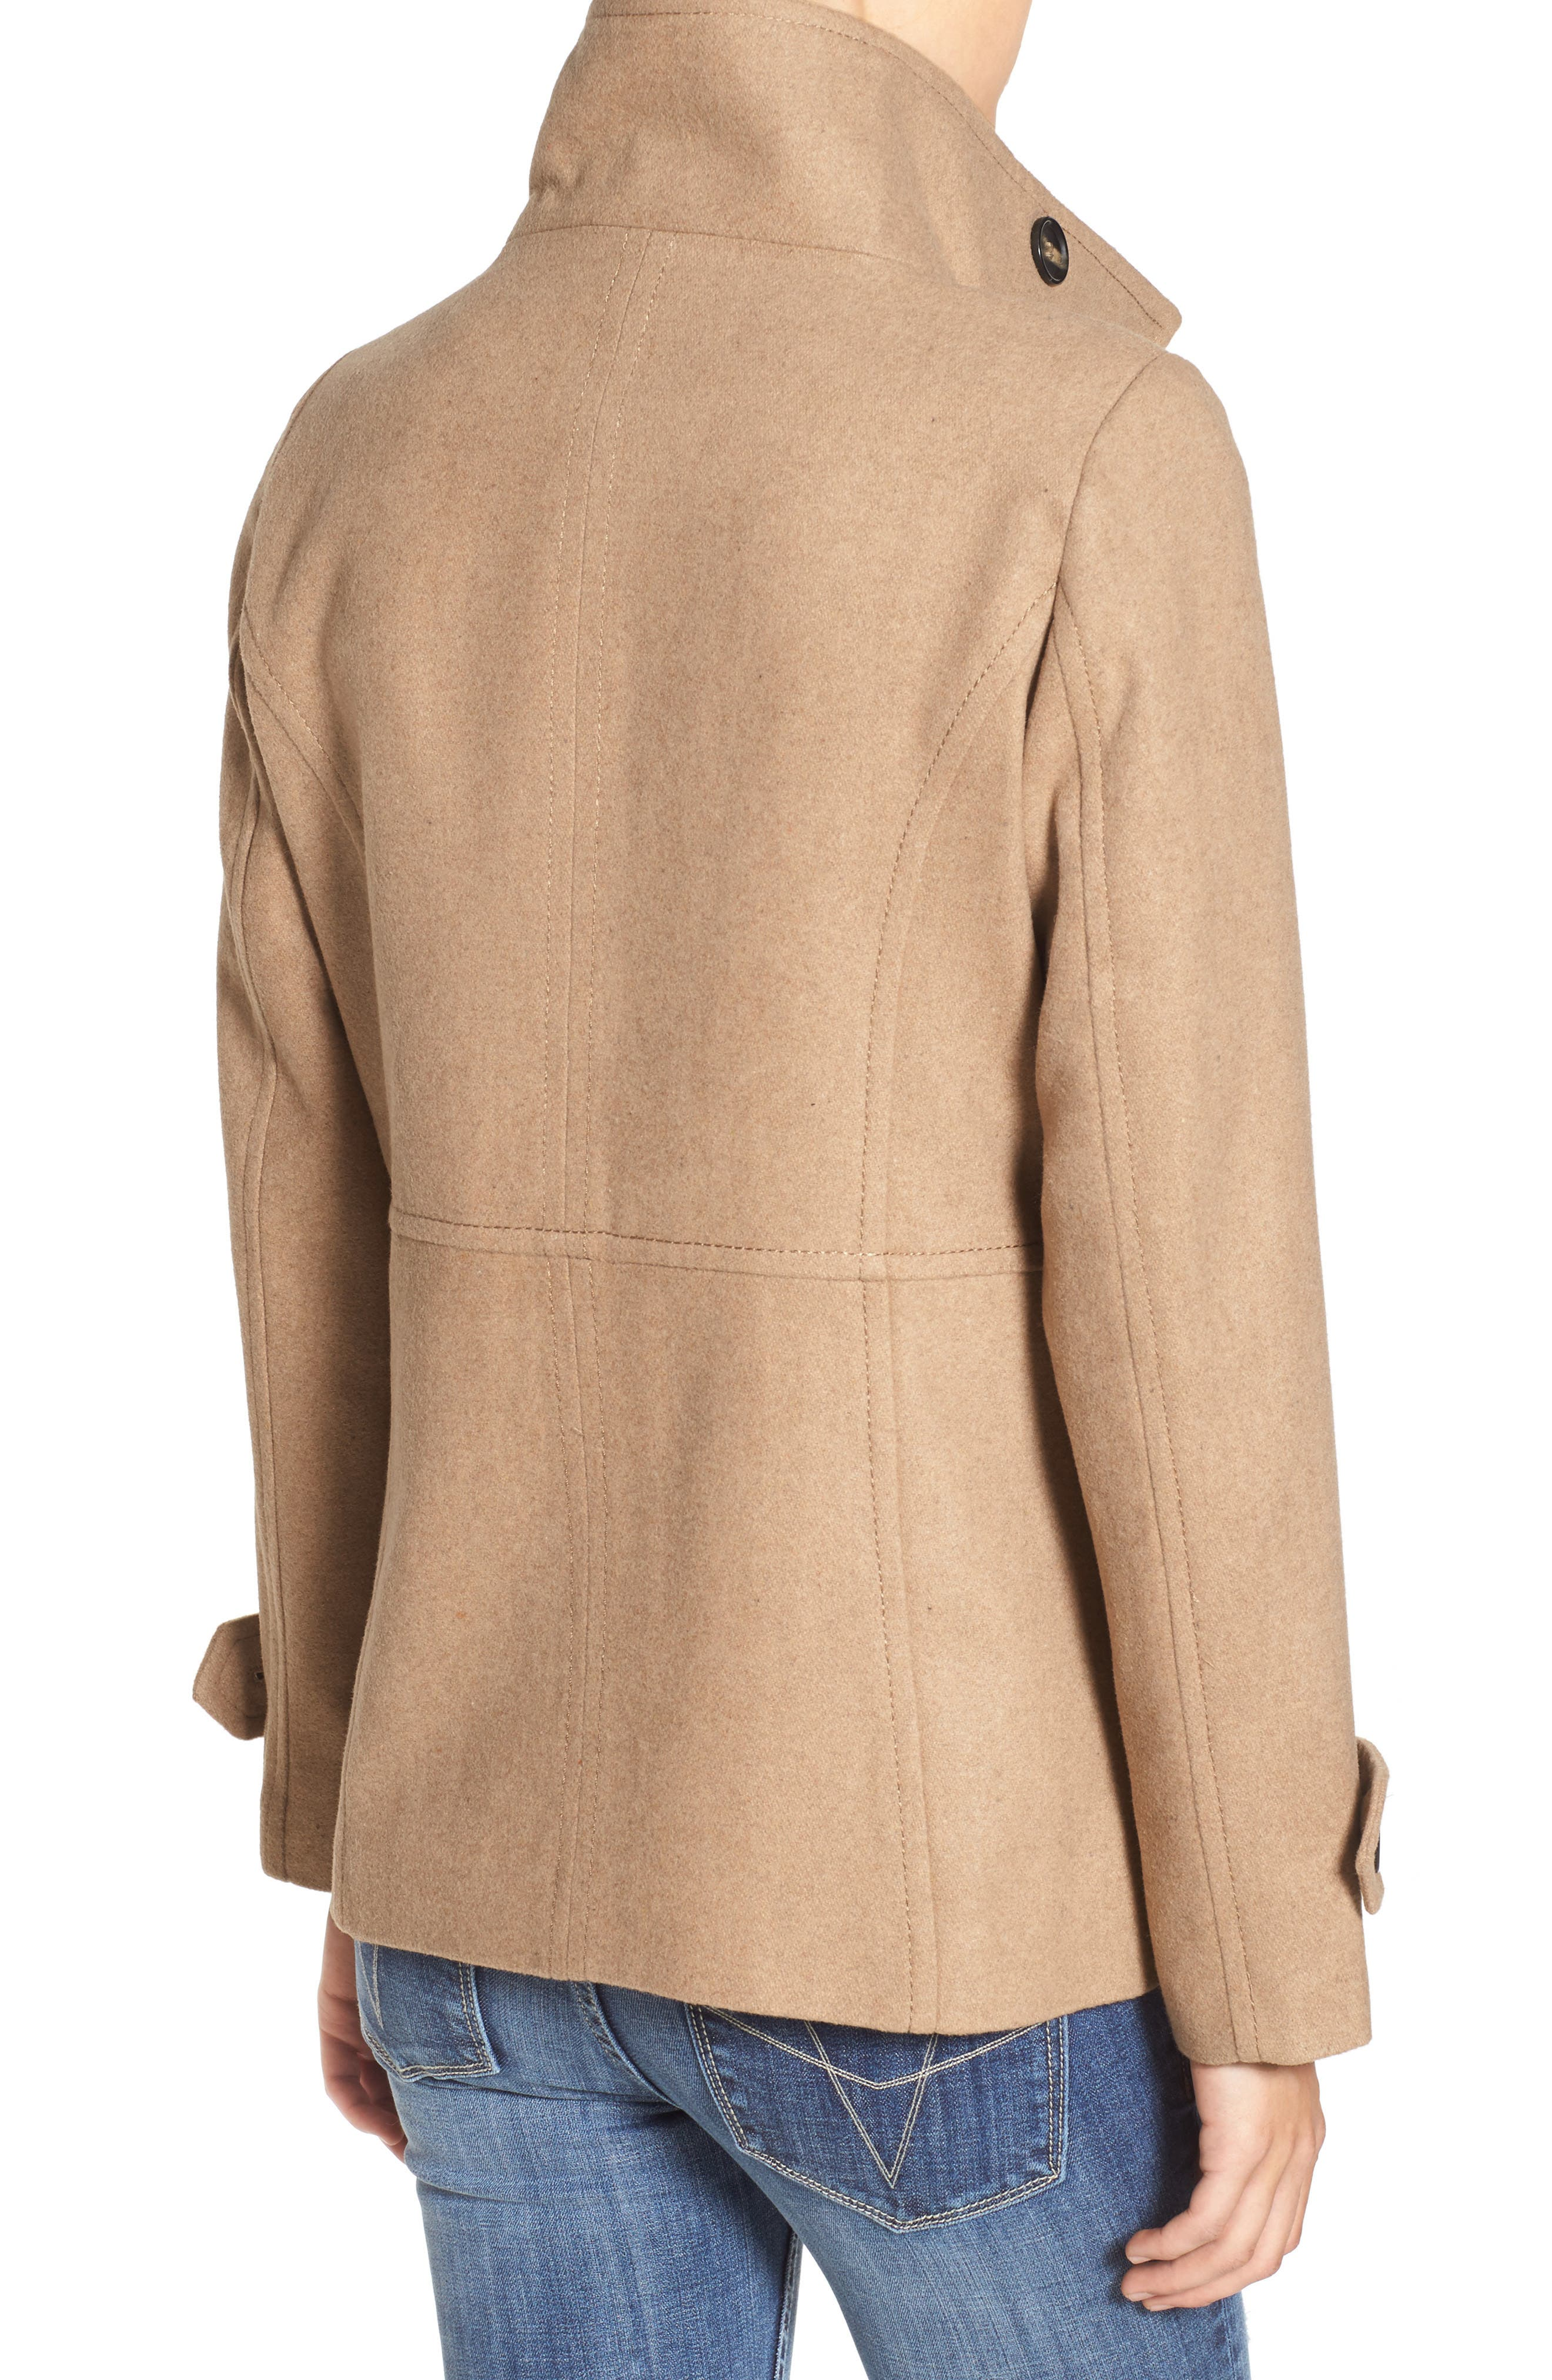 THREAD & SUPPLY, Double Breasted Peacoat, Alternate thumbnail 2, color, 200